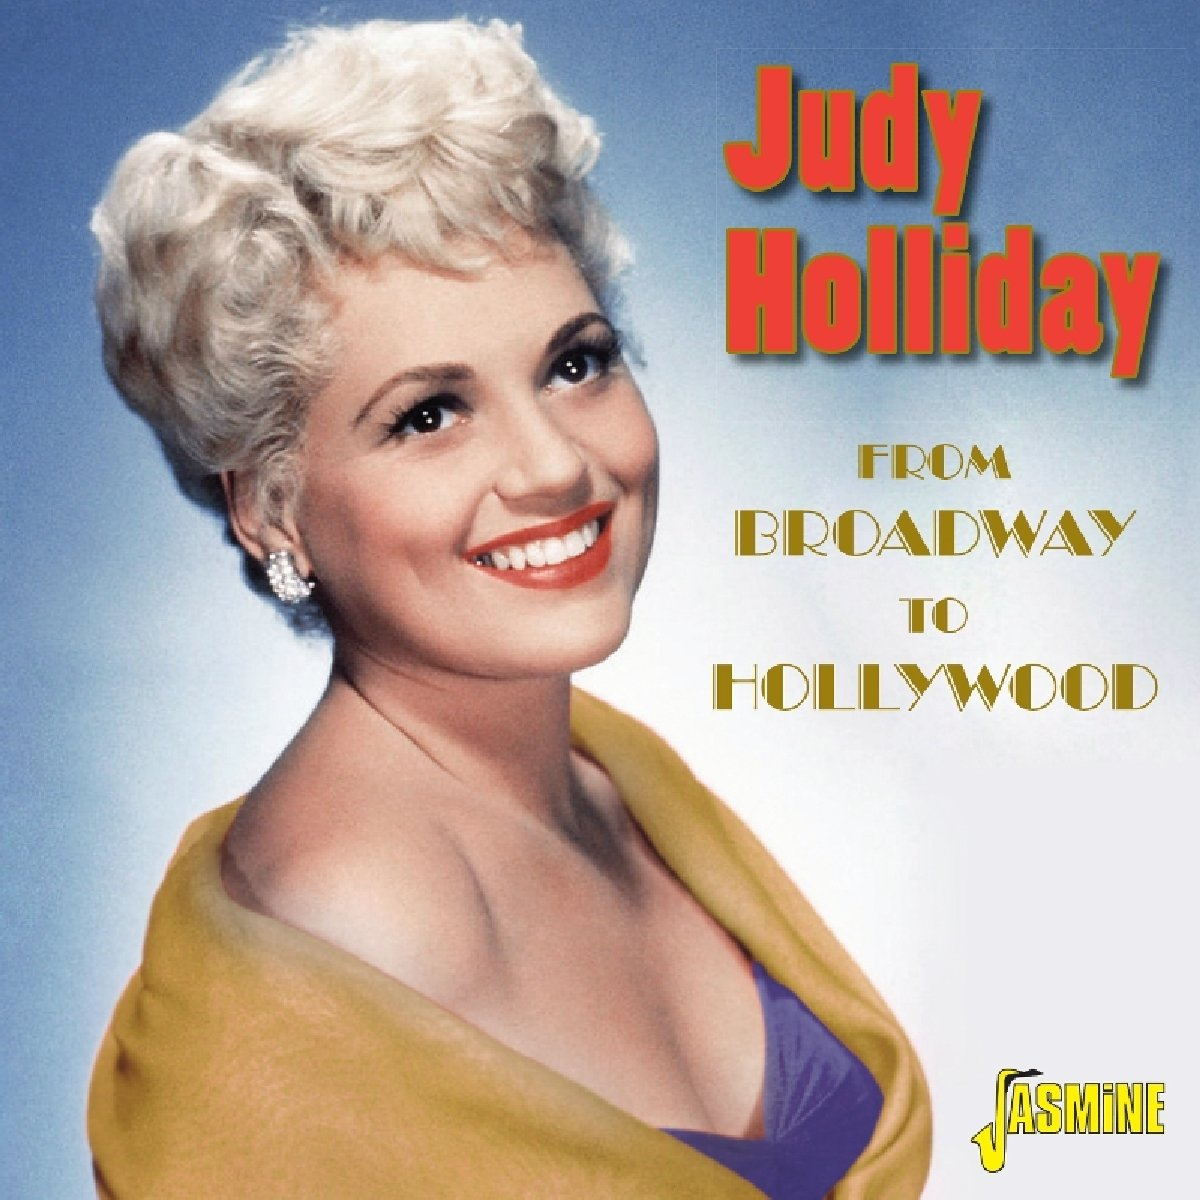 Judy Holliday nudes (52 photos), Pussy, Fappening, Boobs, legs 2017